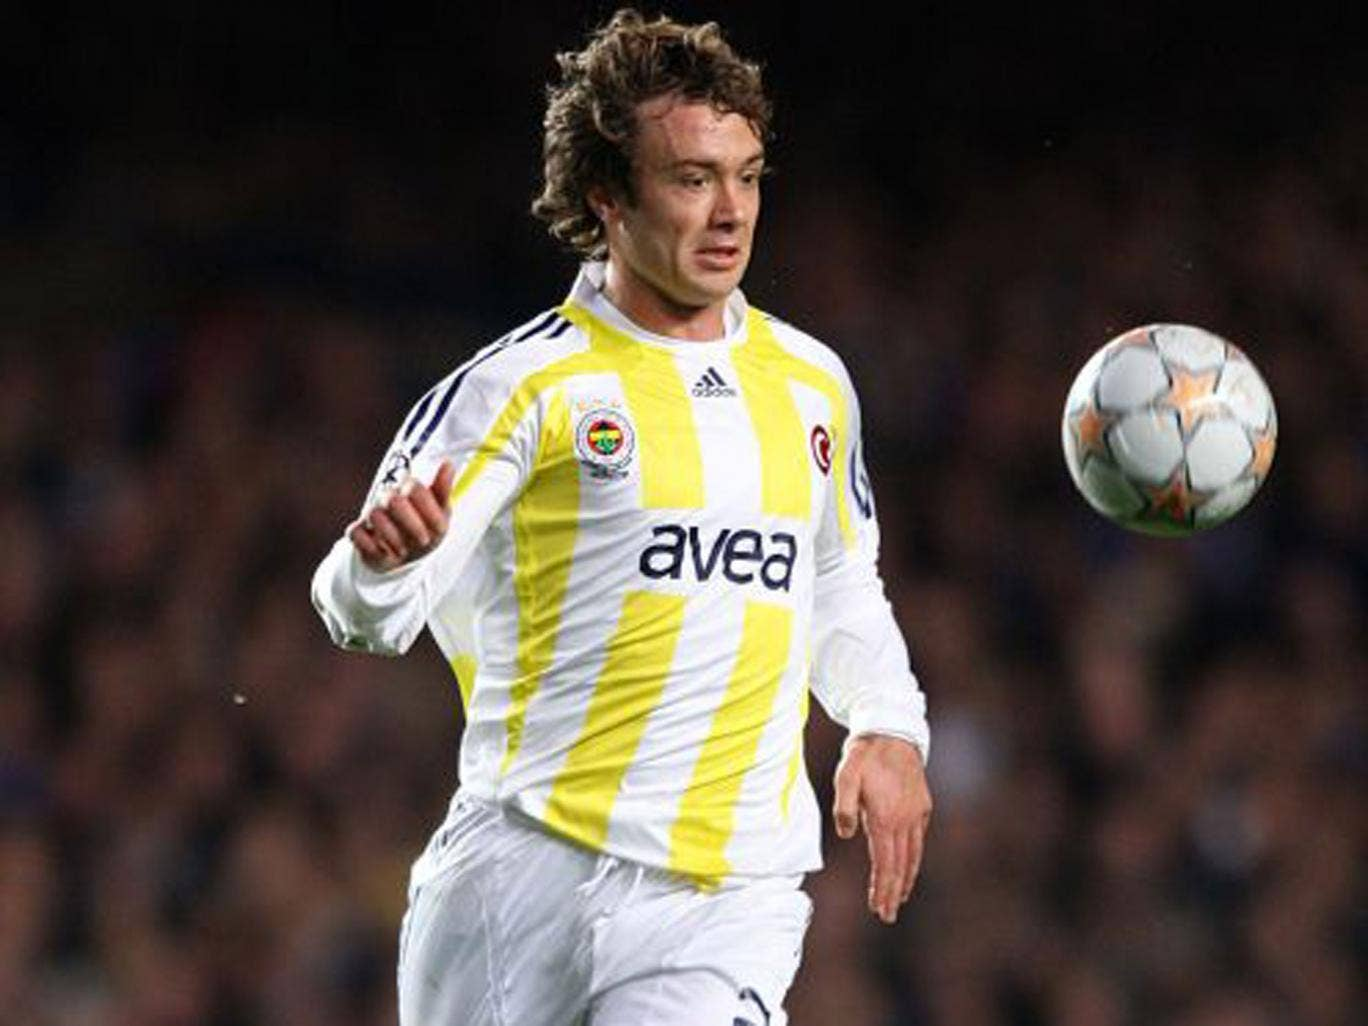 New West Brom signing, Diego Lugano